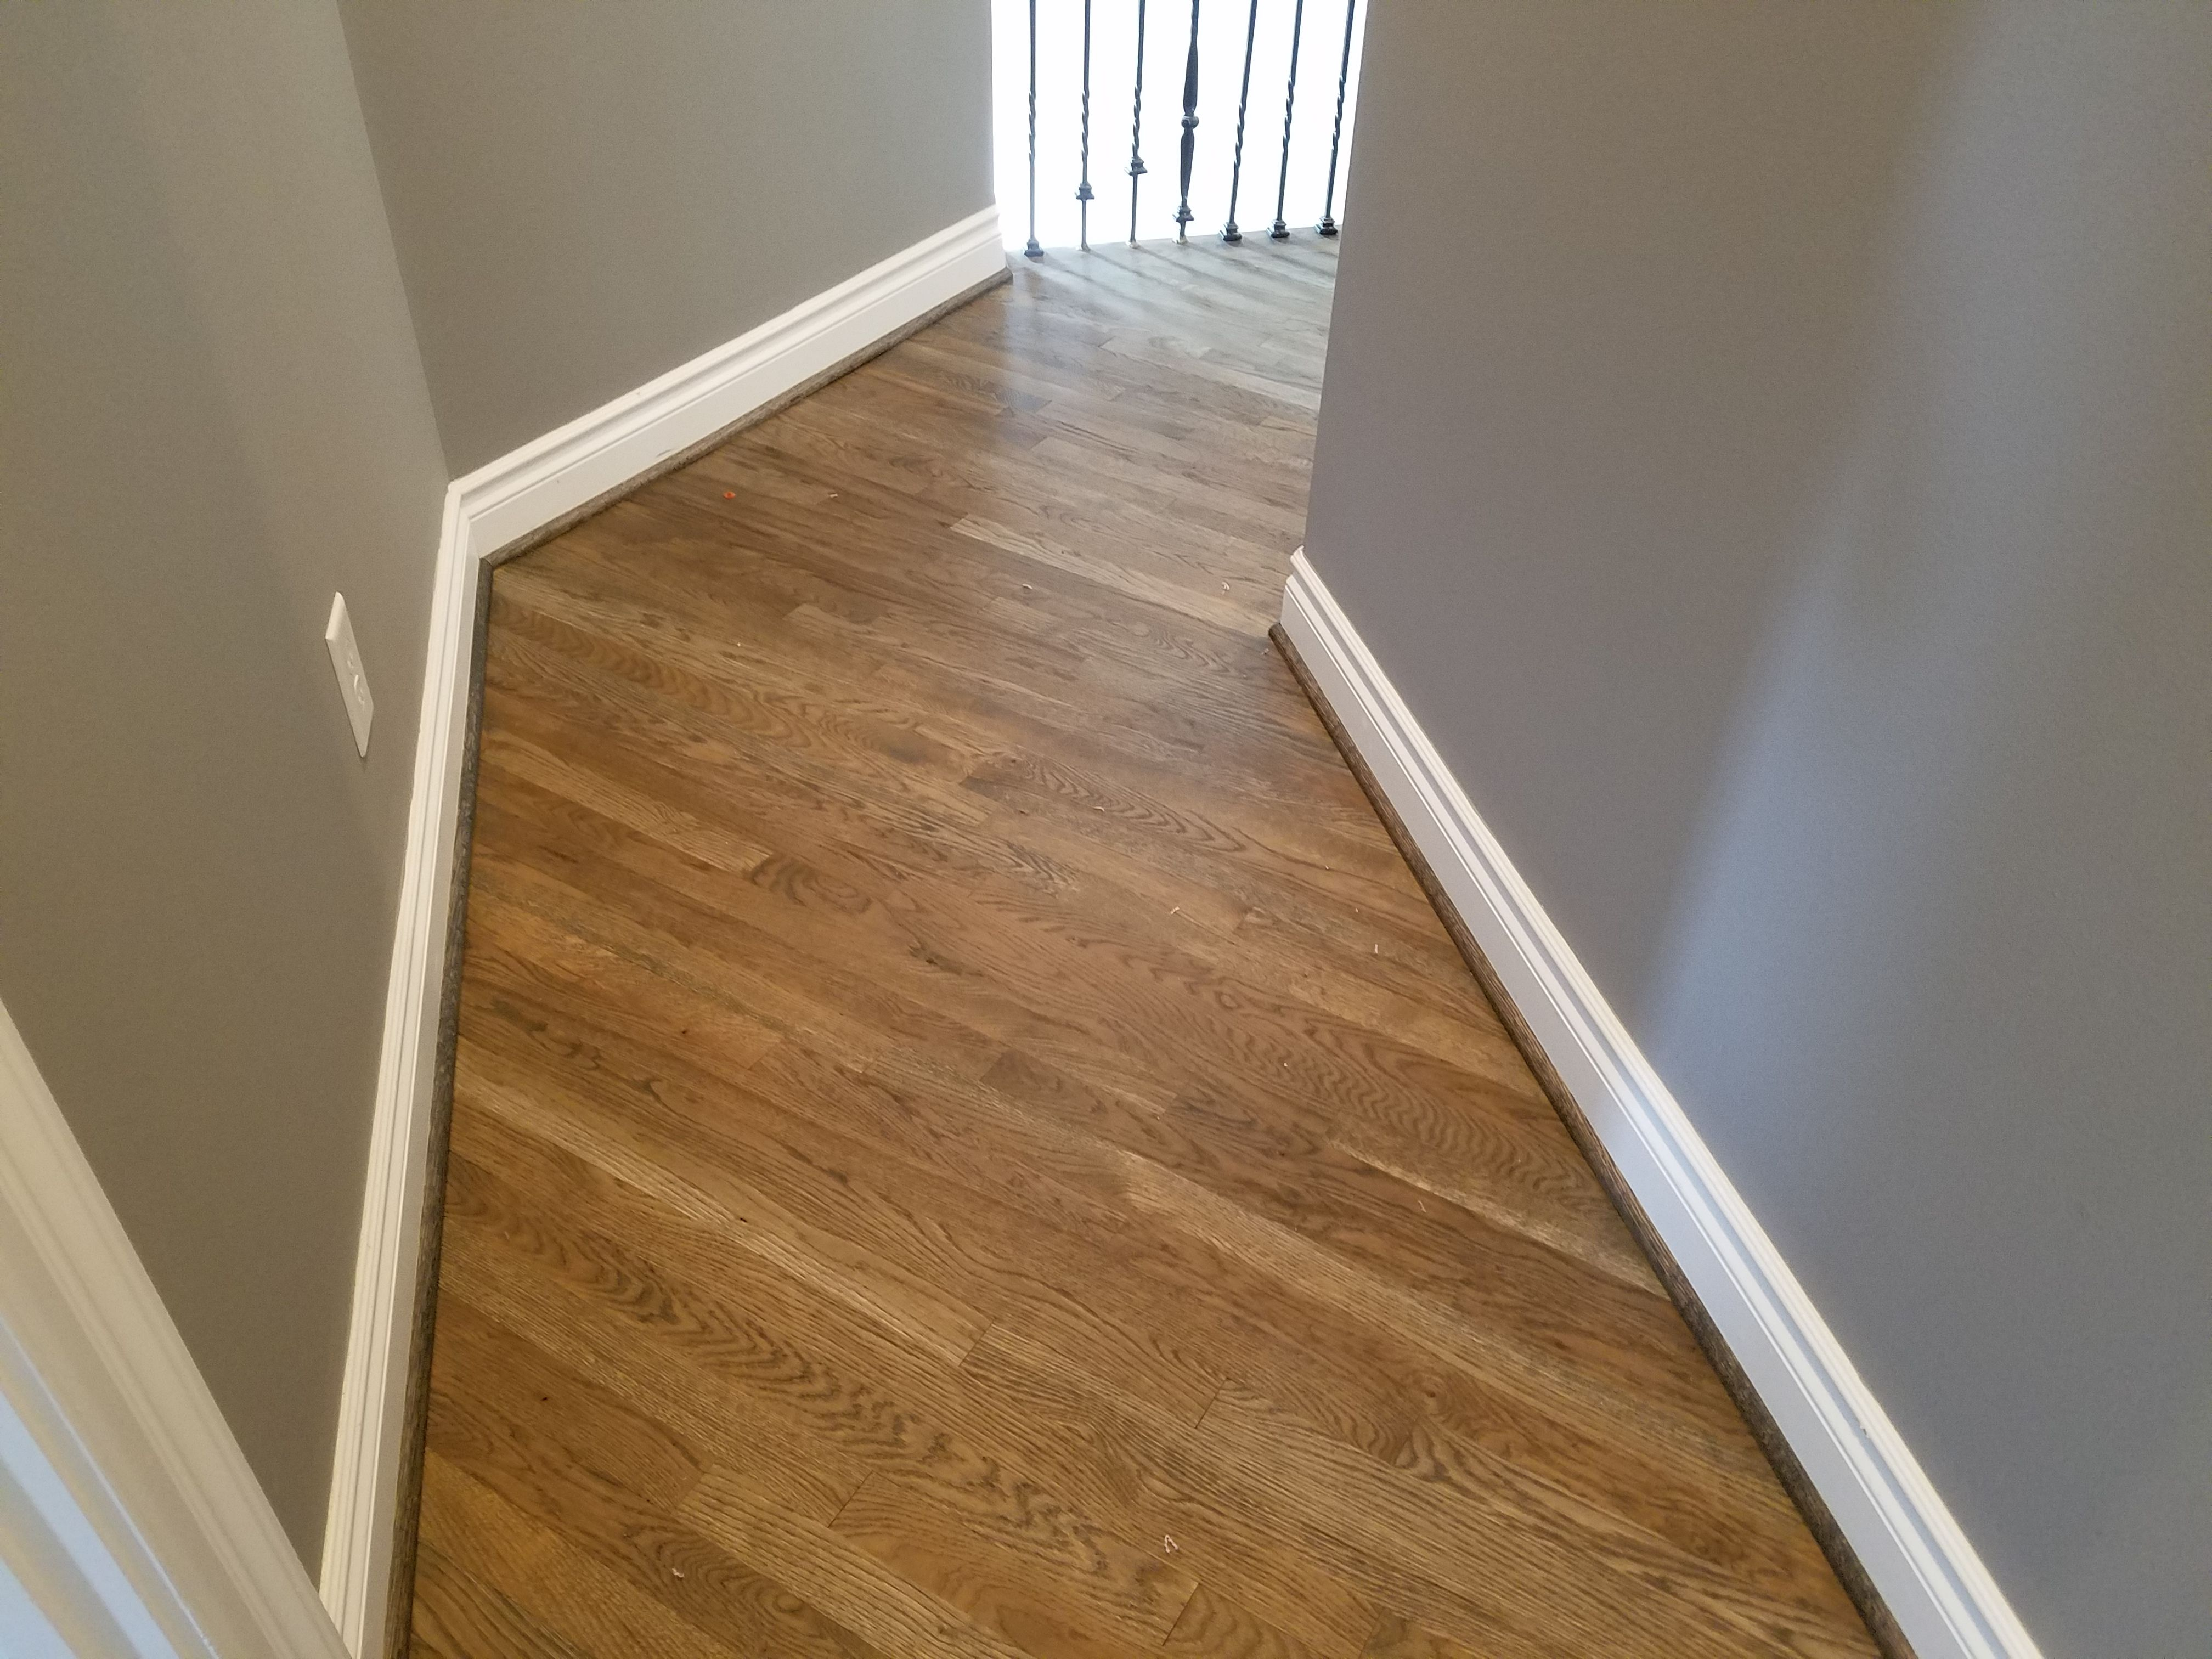 Bona Driftwood Stain On 2 1 4 White Oak Hardwoods Oak Hardwood Hardwood Floors Hardwood